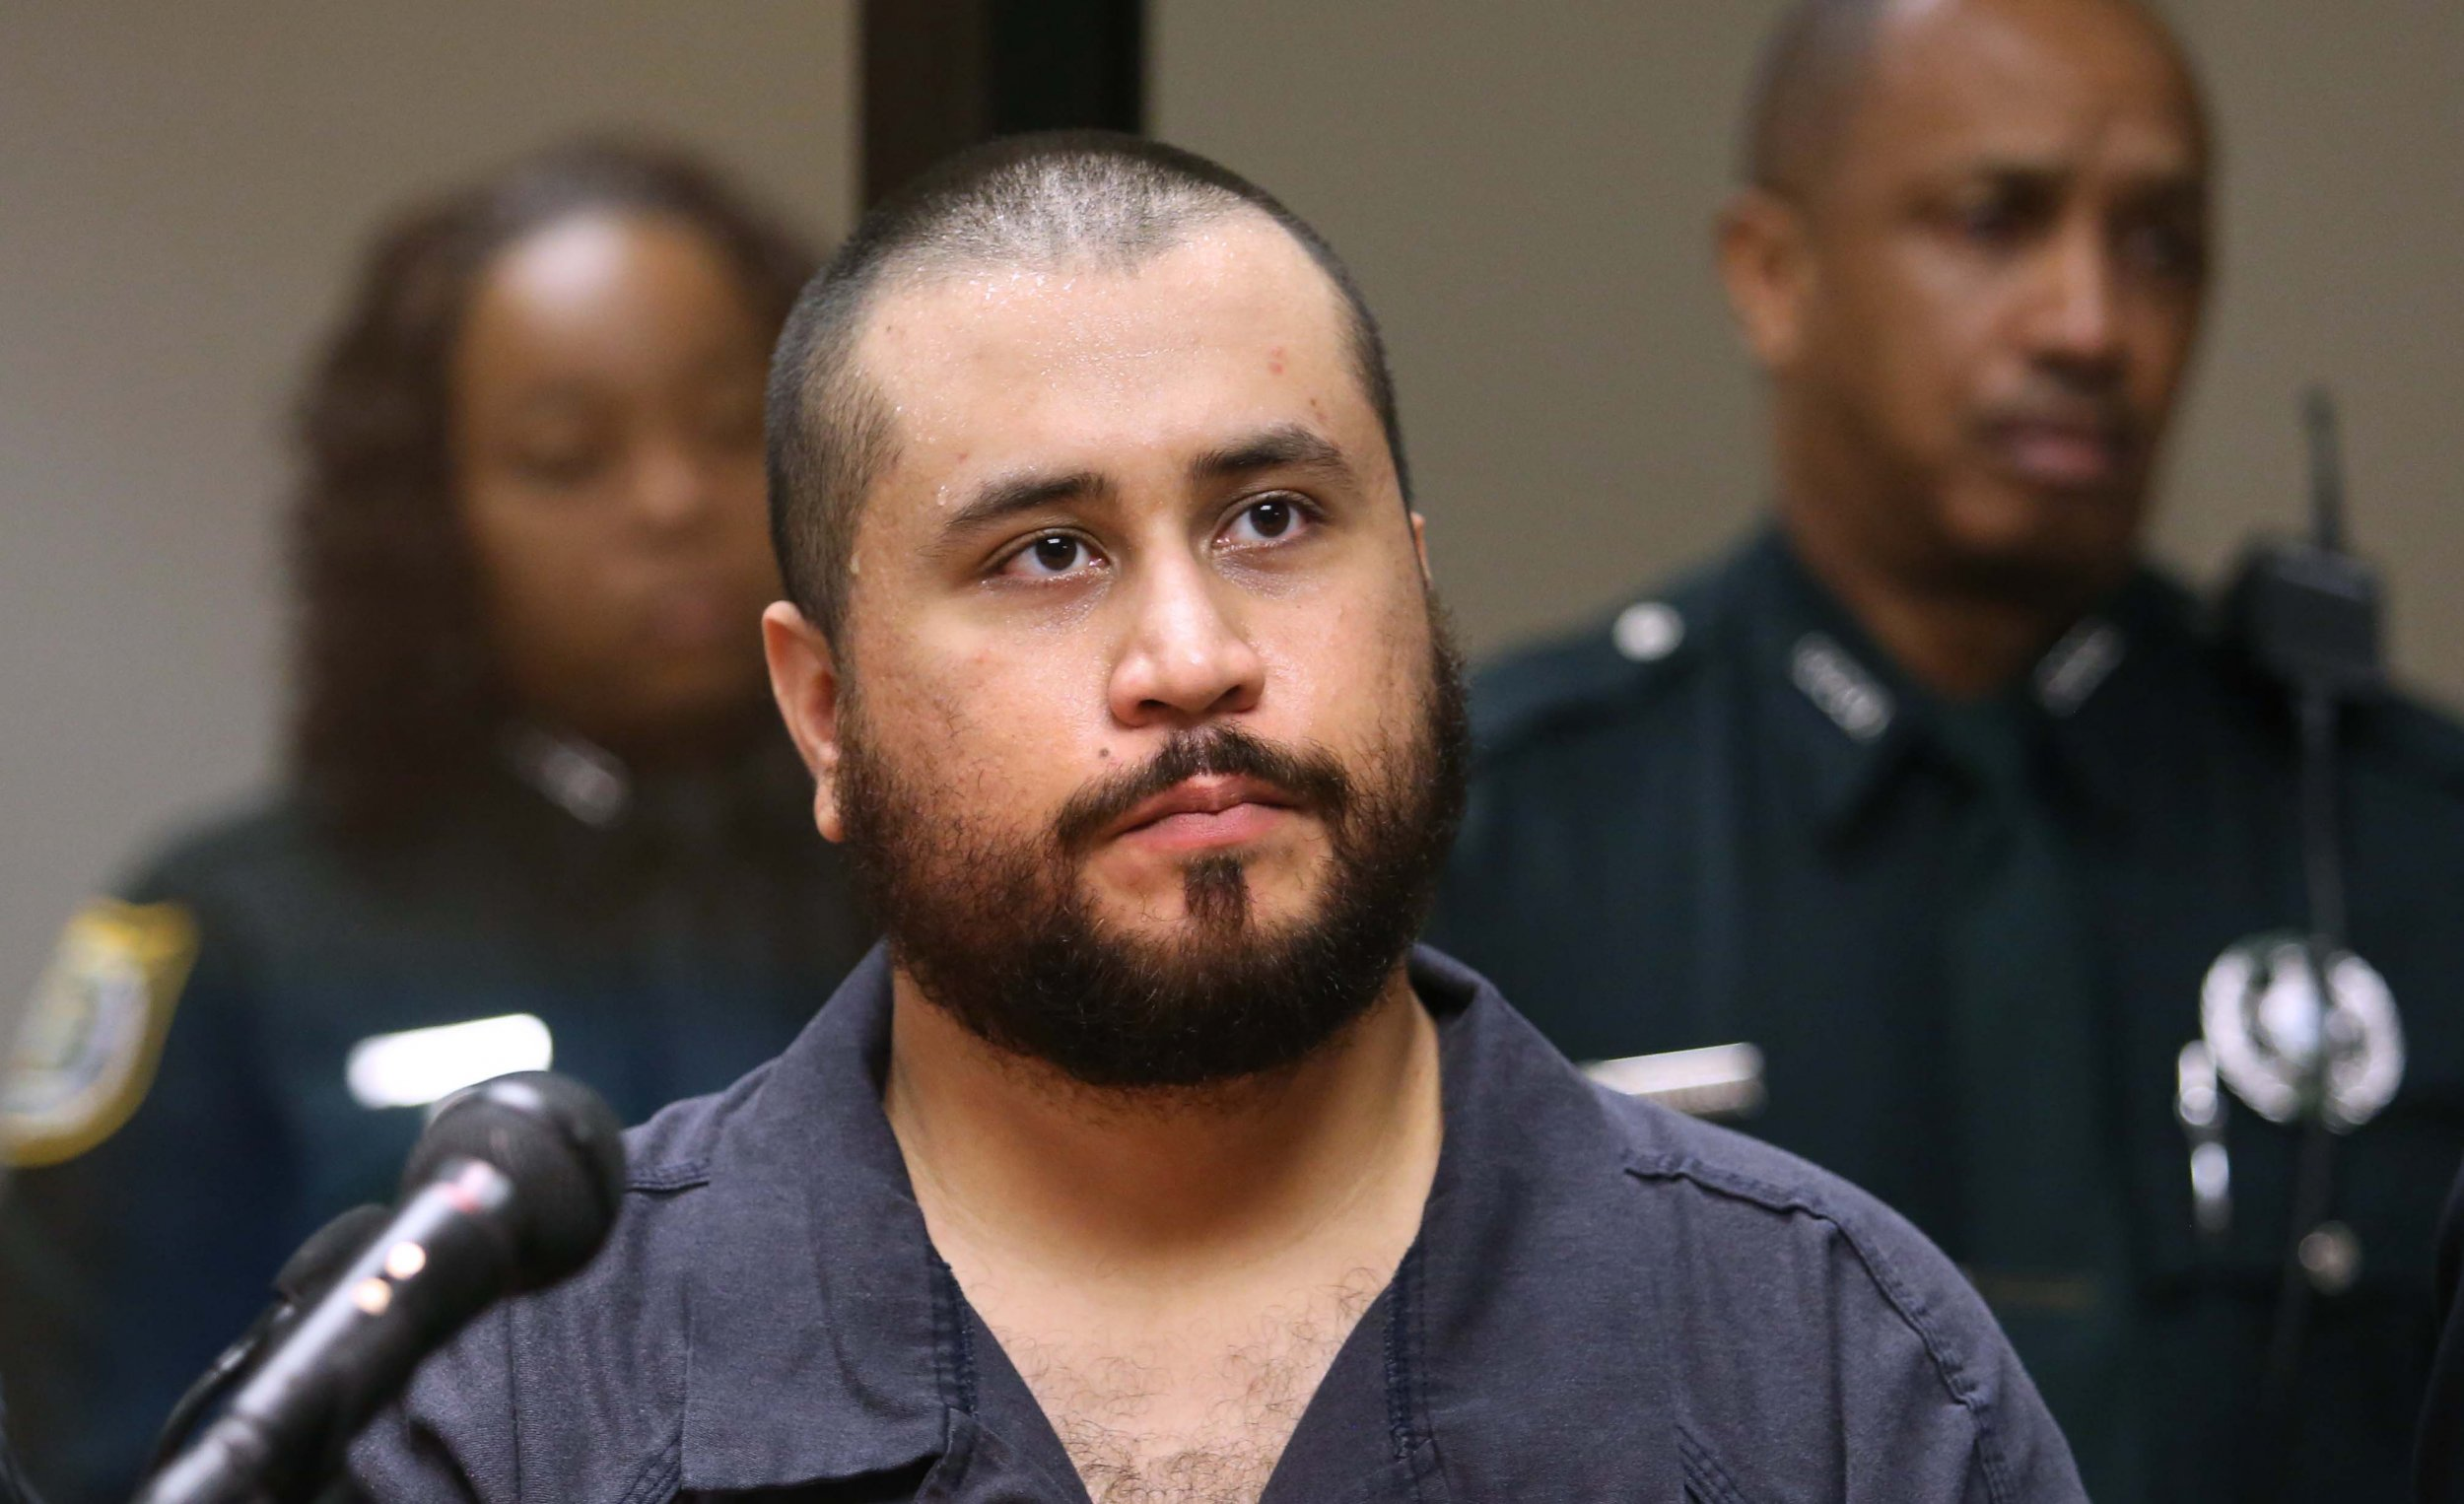 George zimmerman celebrity fight